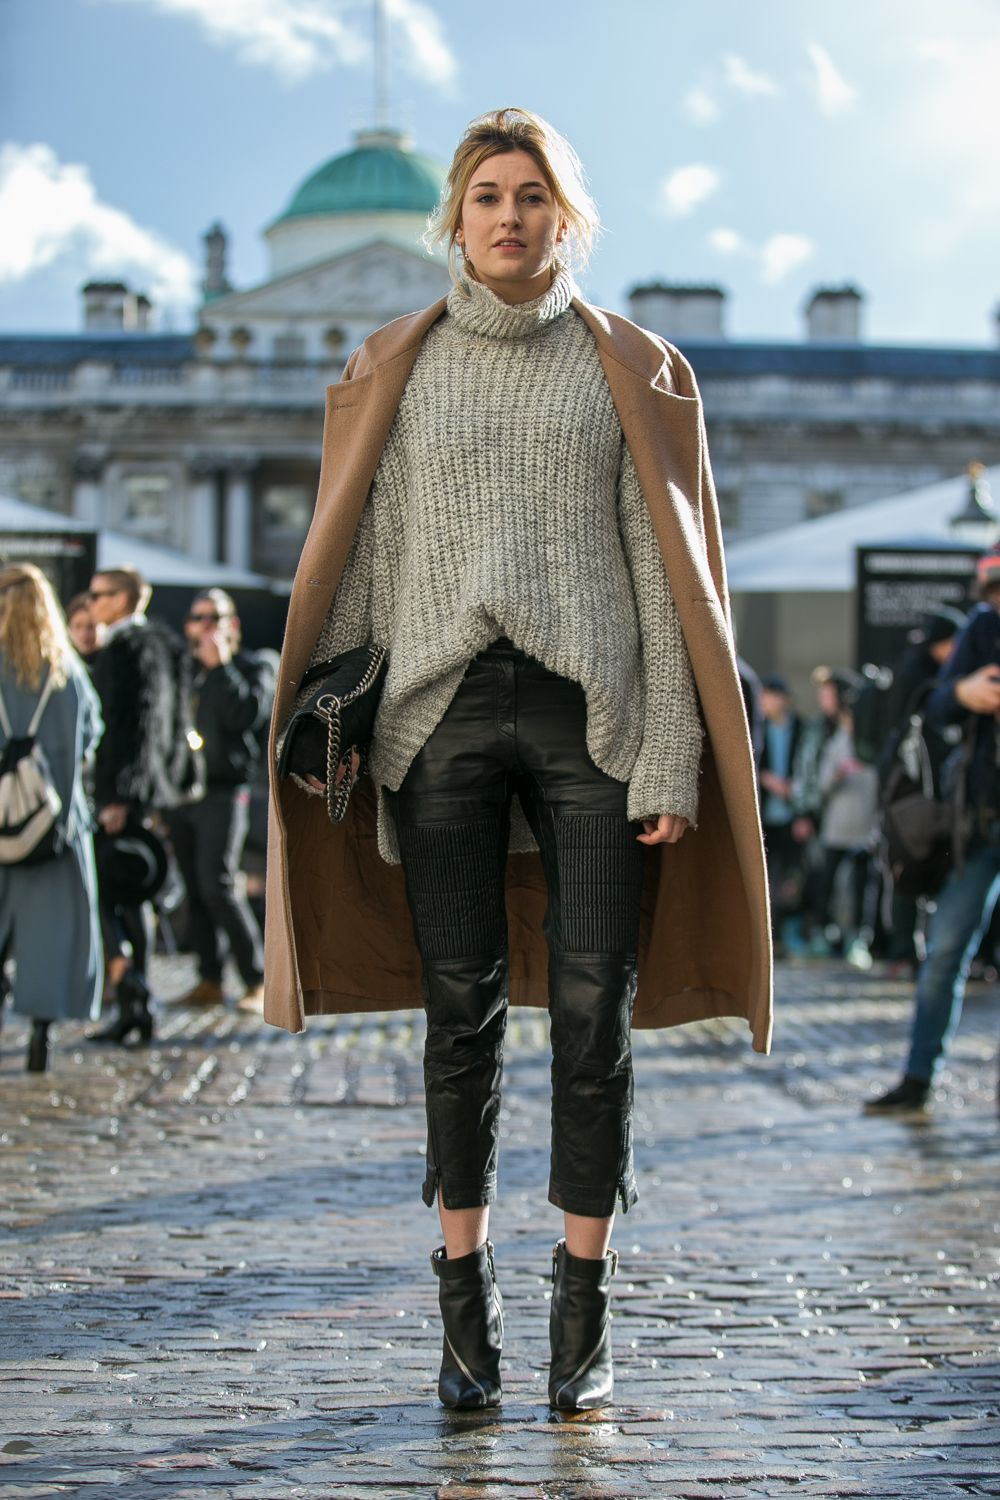 London Street Style With Camille Charrière At London Fashion Week - Lightaholic